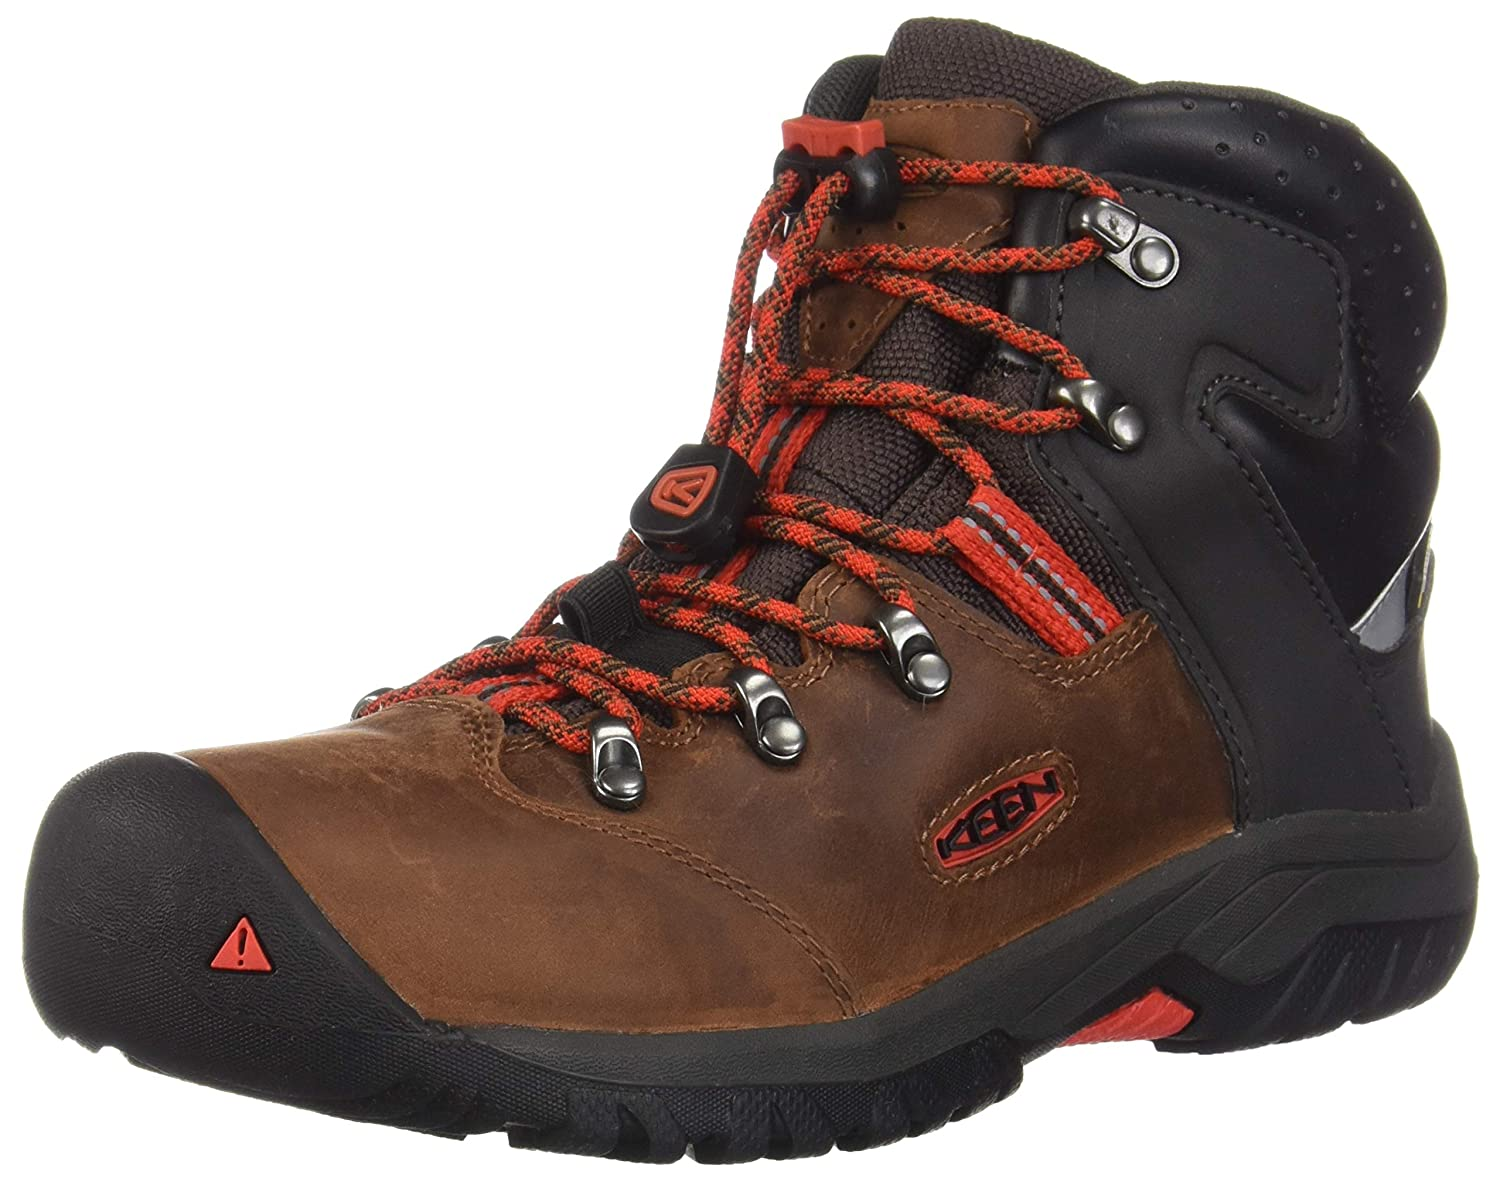 KEEN - Kid's Torino II Mid Waterproof Winter Boots